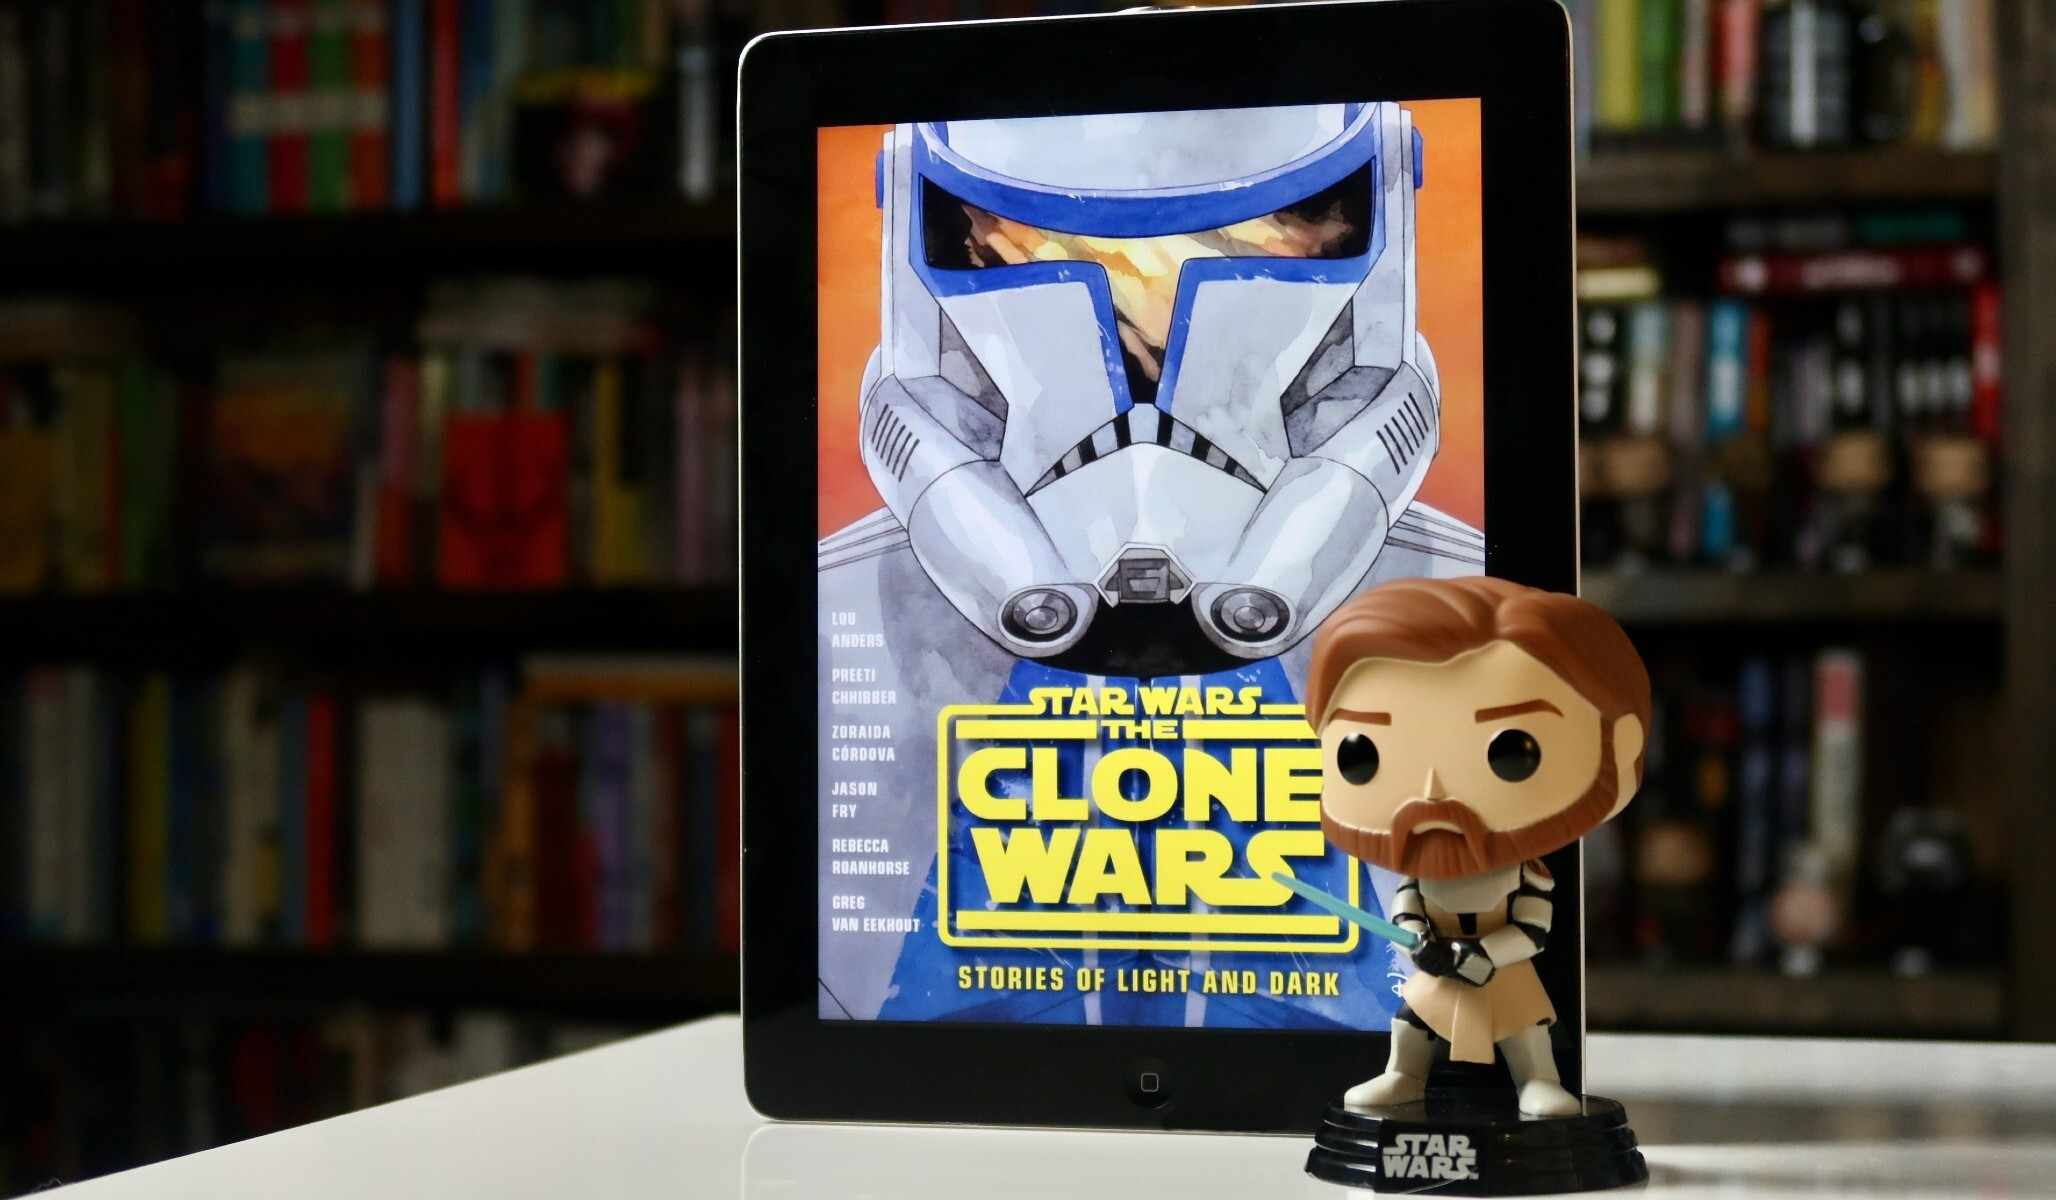 Star Wars: The Clone Wars -- Stories of Light and Dark cover and funko courtesy of Youtini